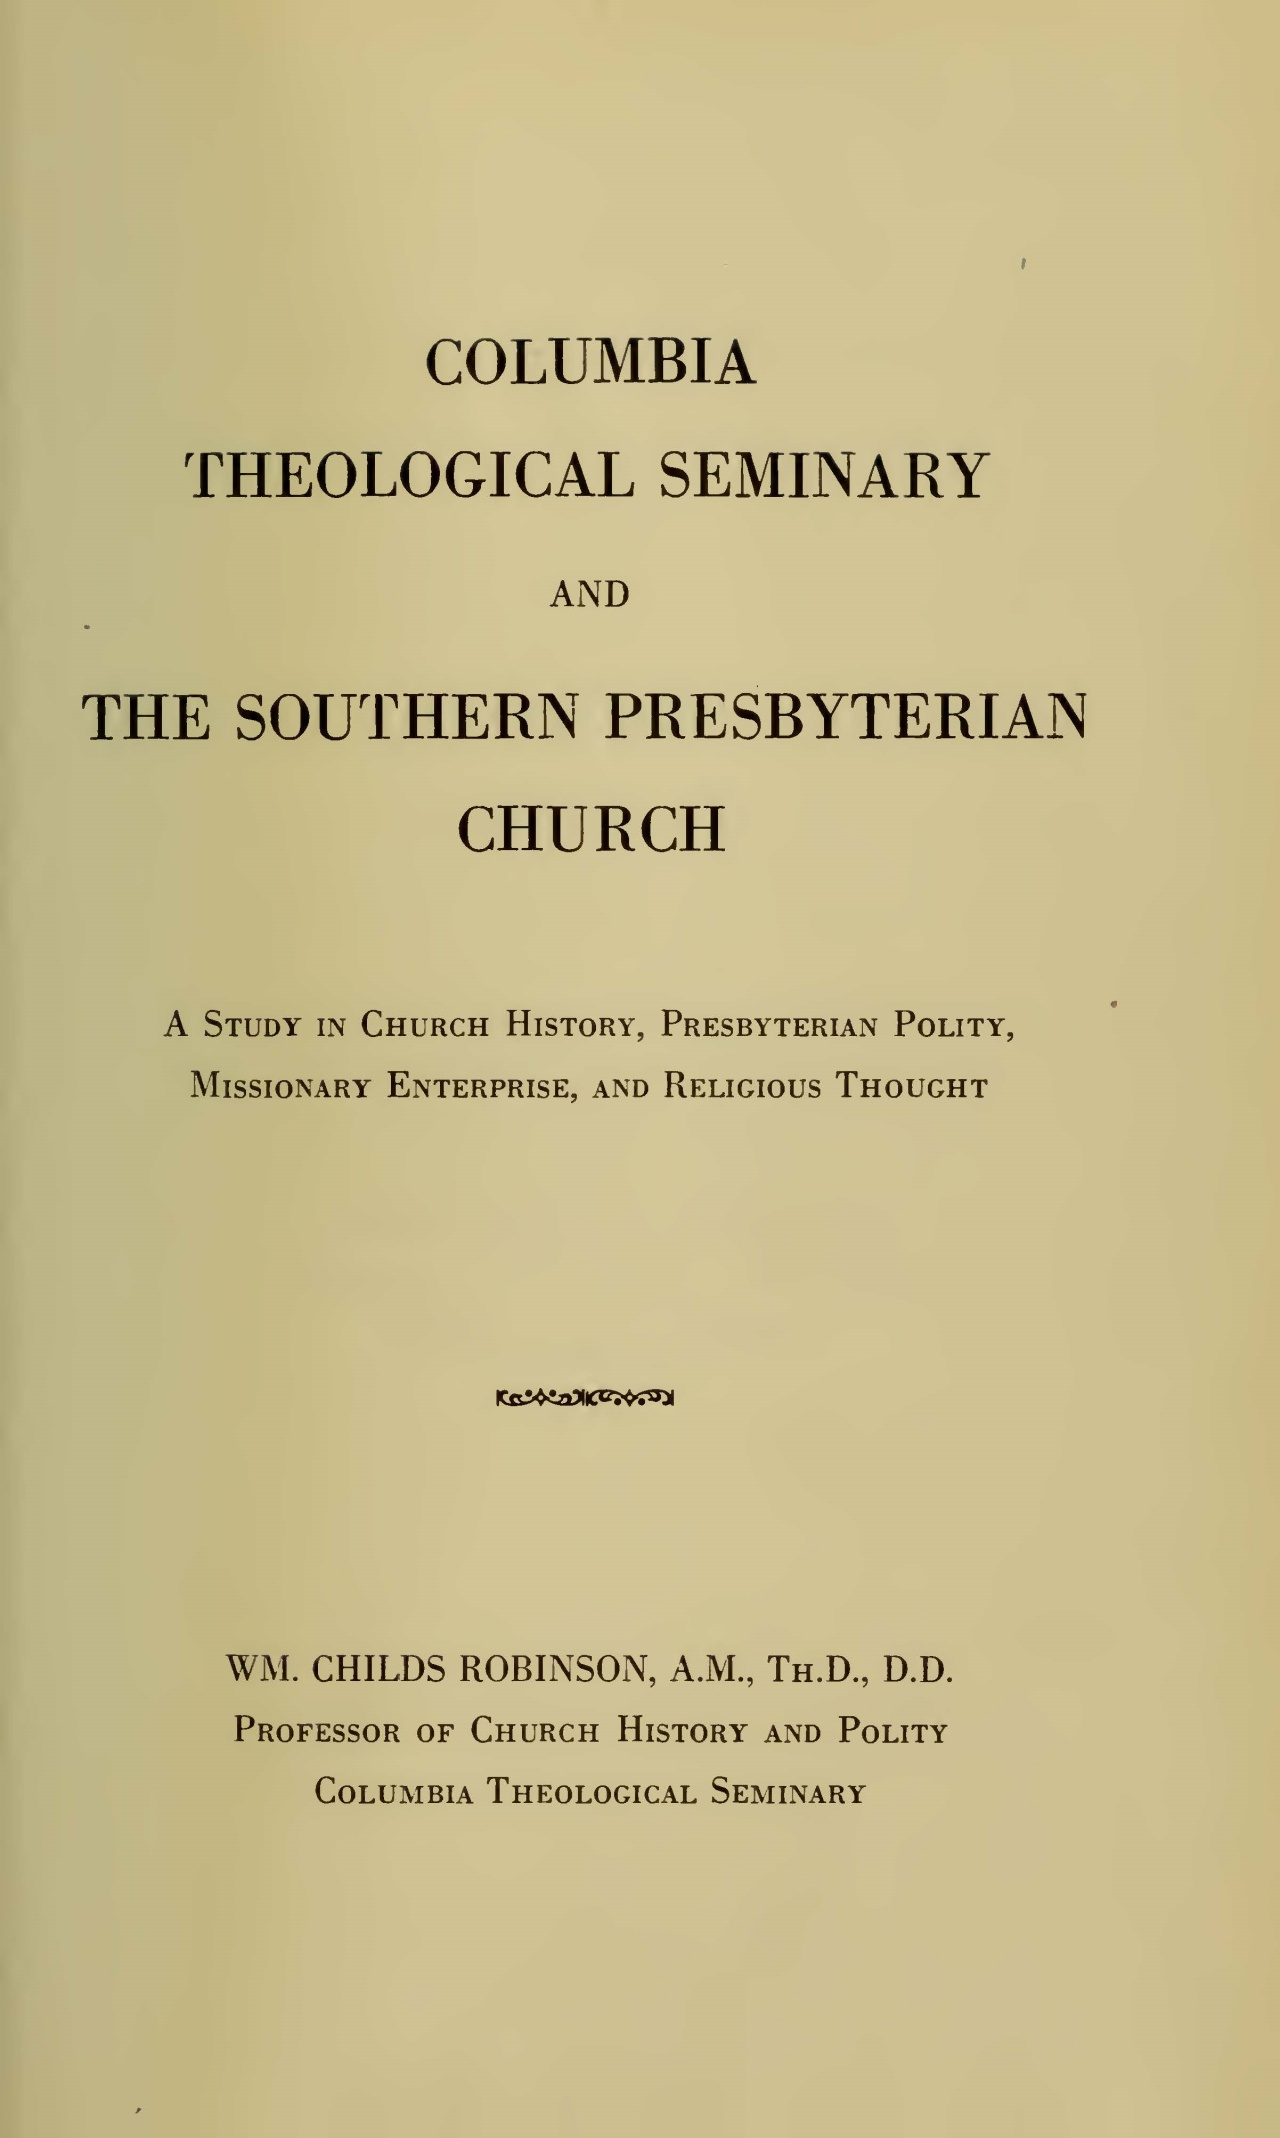 Robinson, William Childs, Columbia Theological Seminary and the Southern Presbyterian Church Title Page.jpg